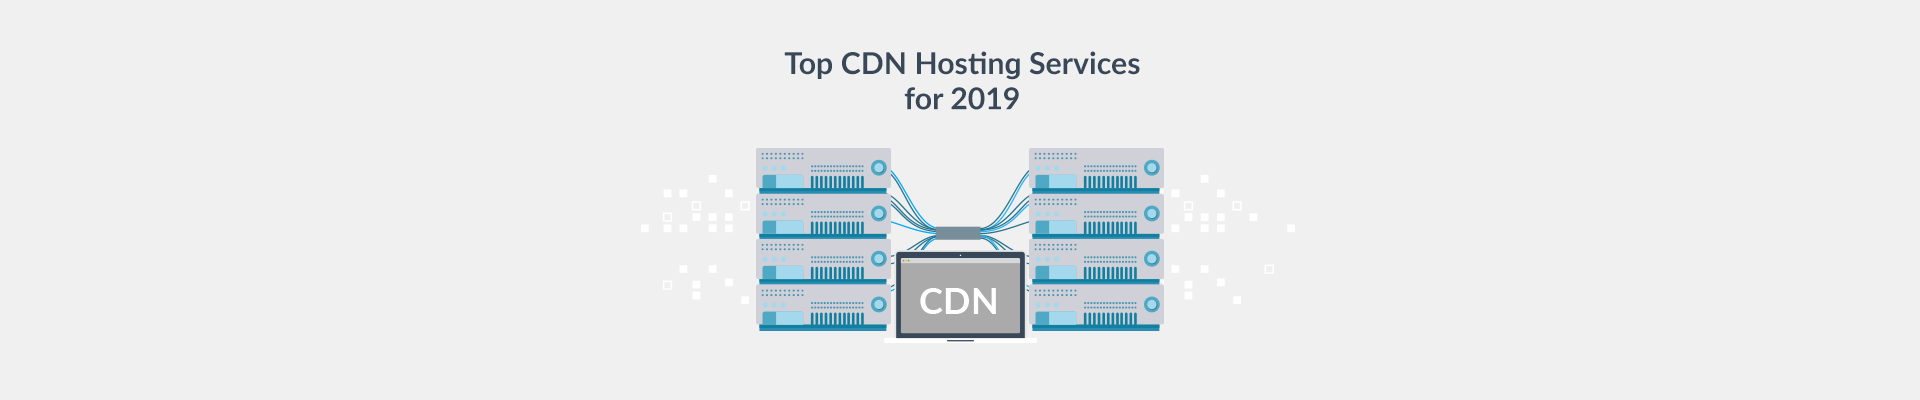 Your Top 10 CDN Service Guide 2019 - Plesk